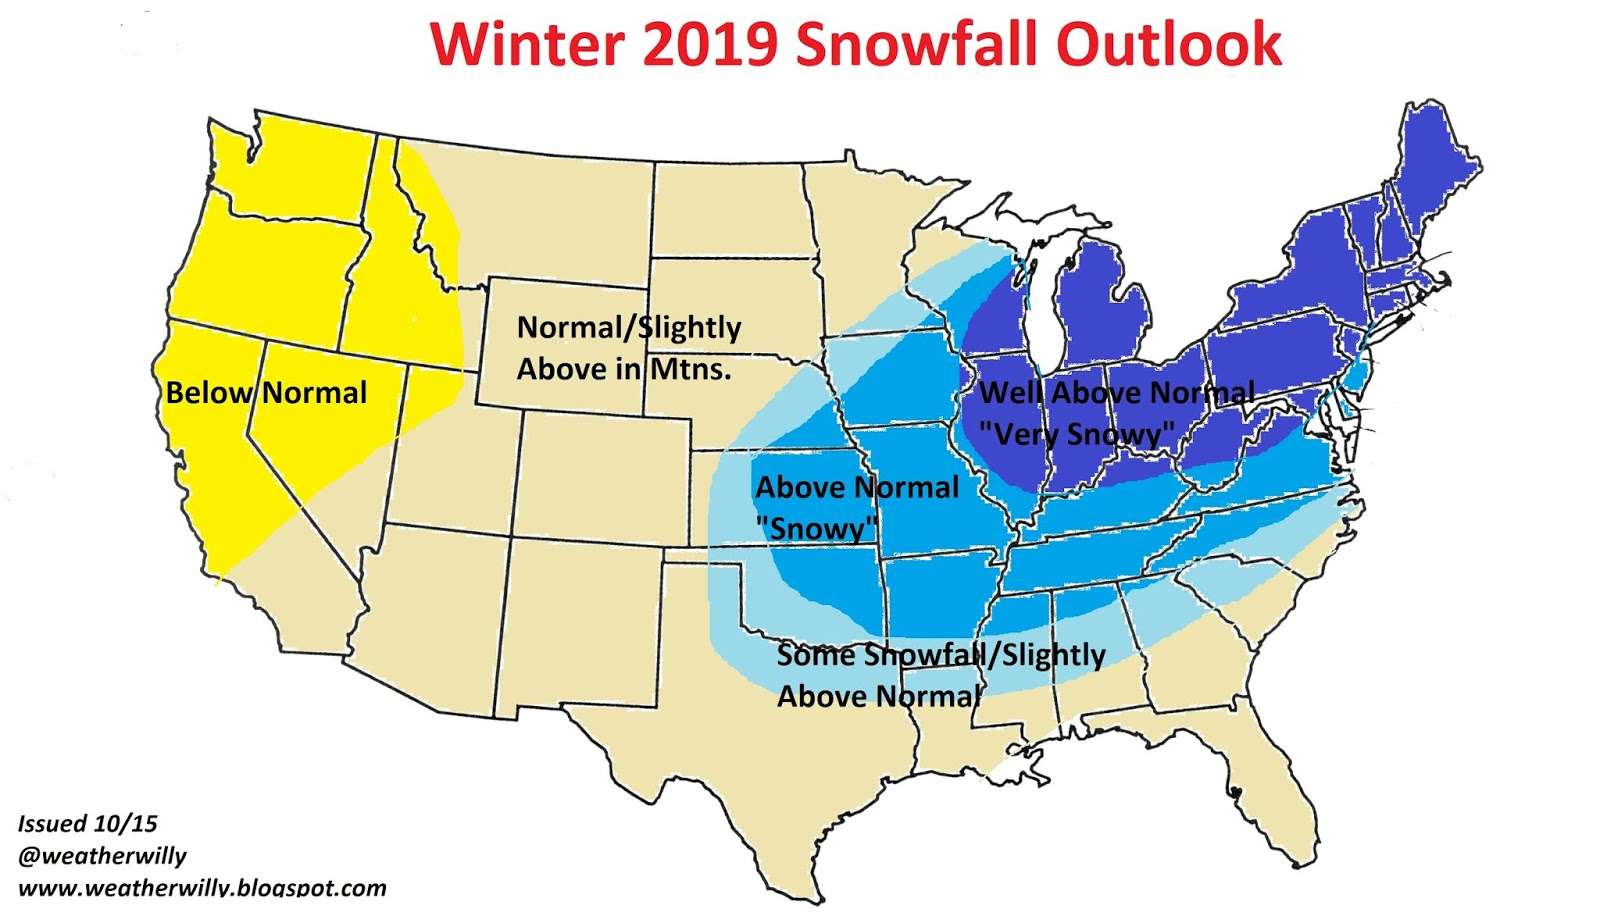 so there it is as you can see i am all in on a harsh winter for many areas now time will tell on if this all pans out